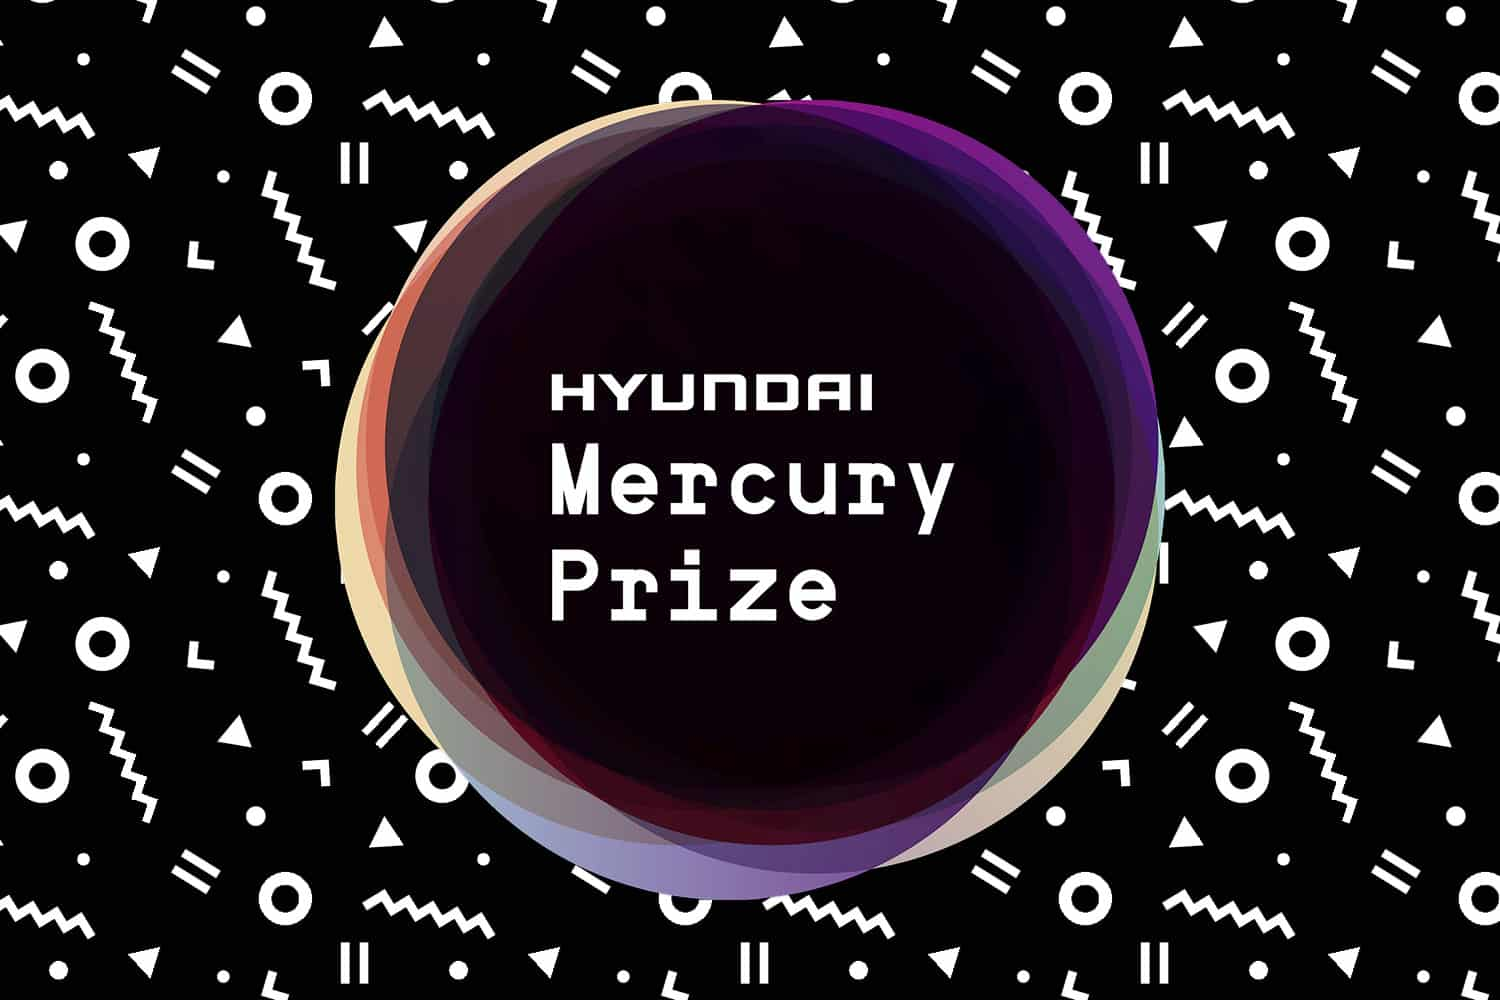 Mercury Prize 2016: The Contenders